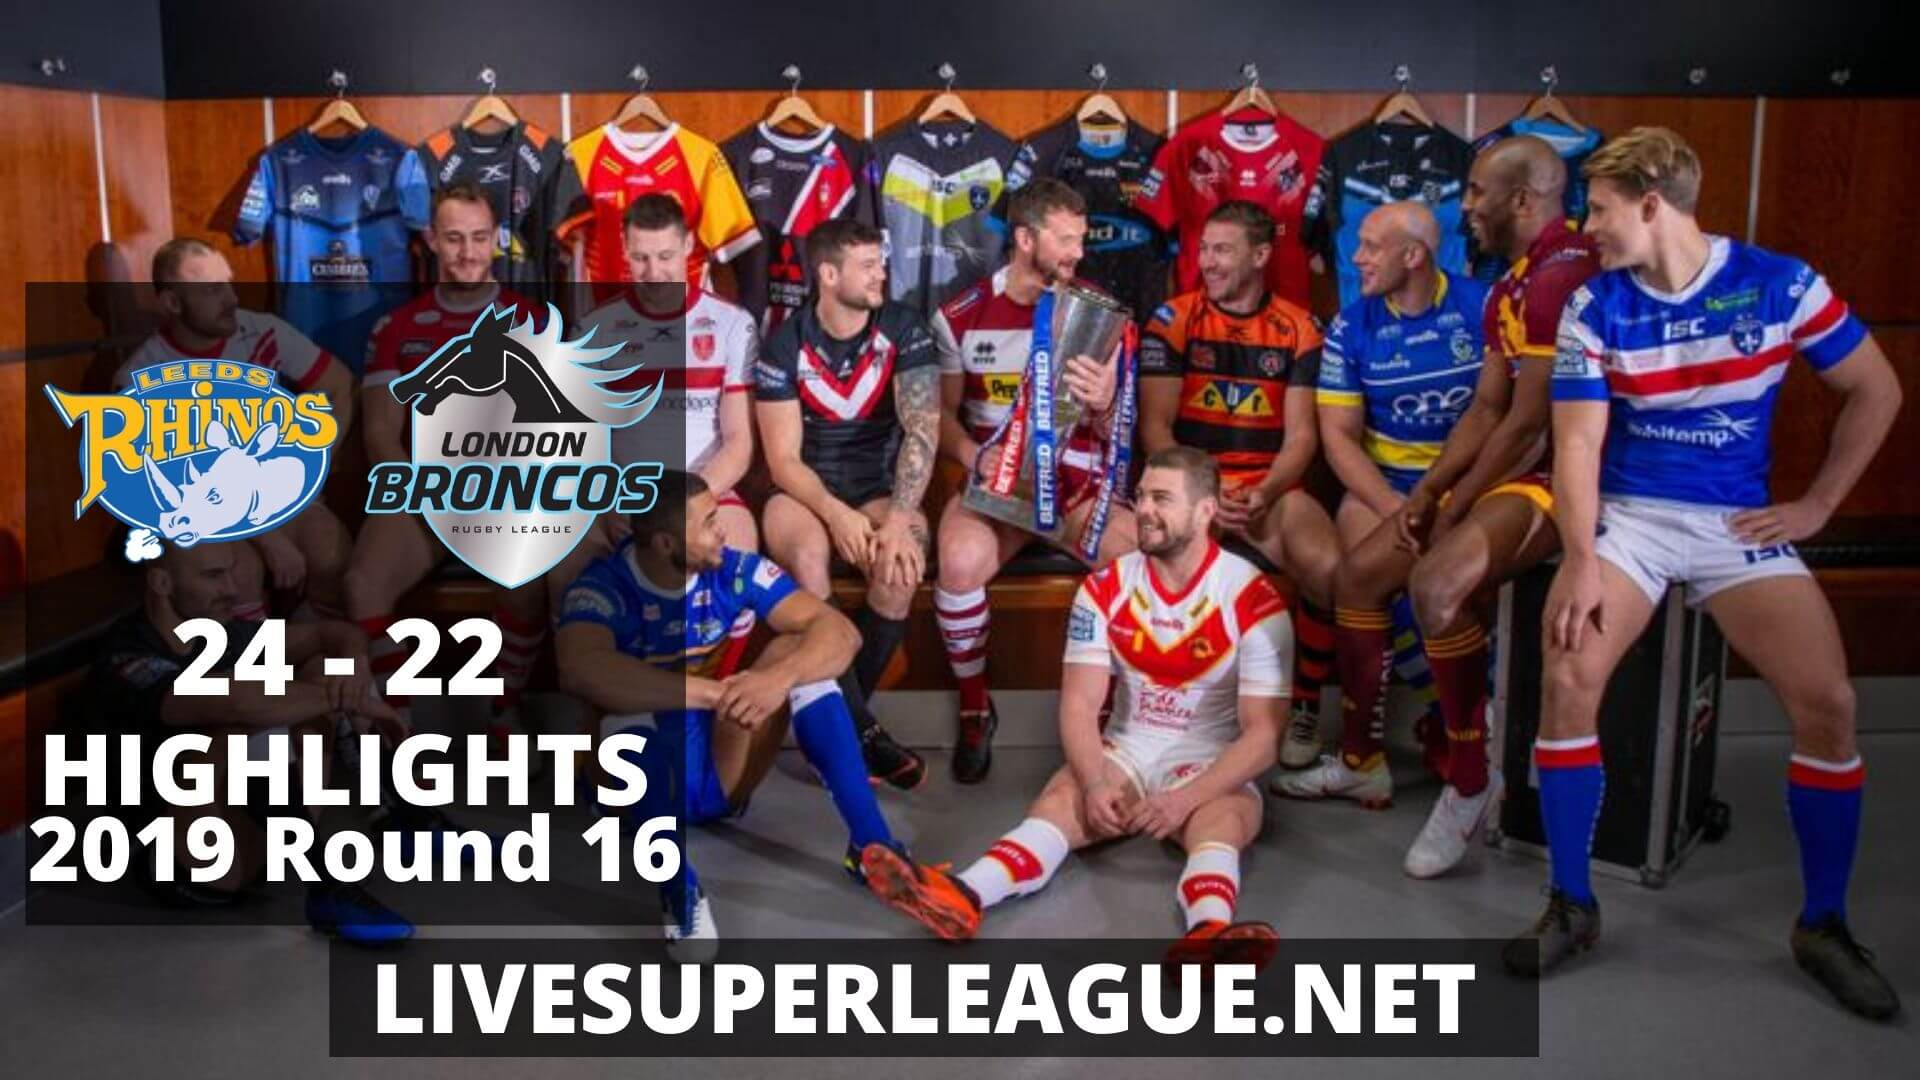 Leeds Rhinos Vs London Broncos Highlights 2019 Round 16